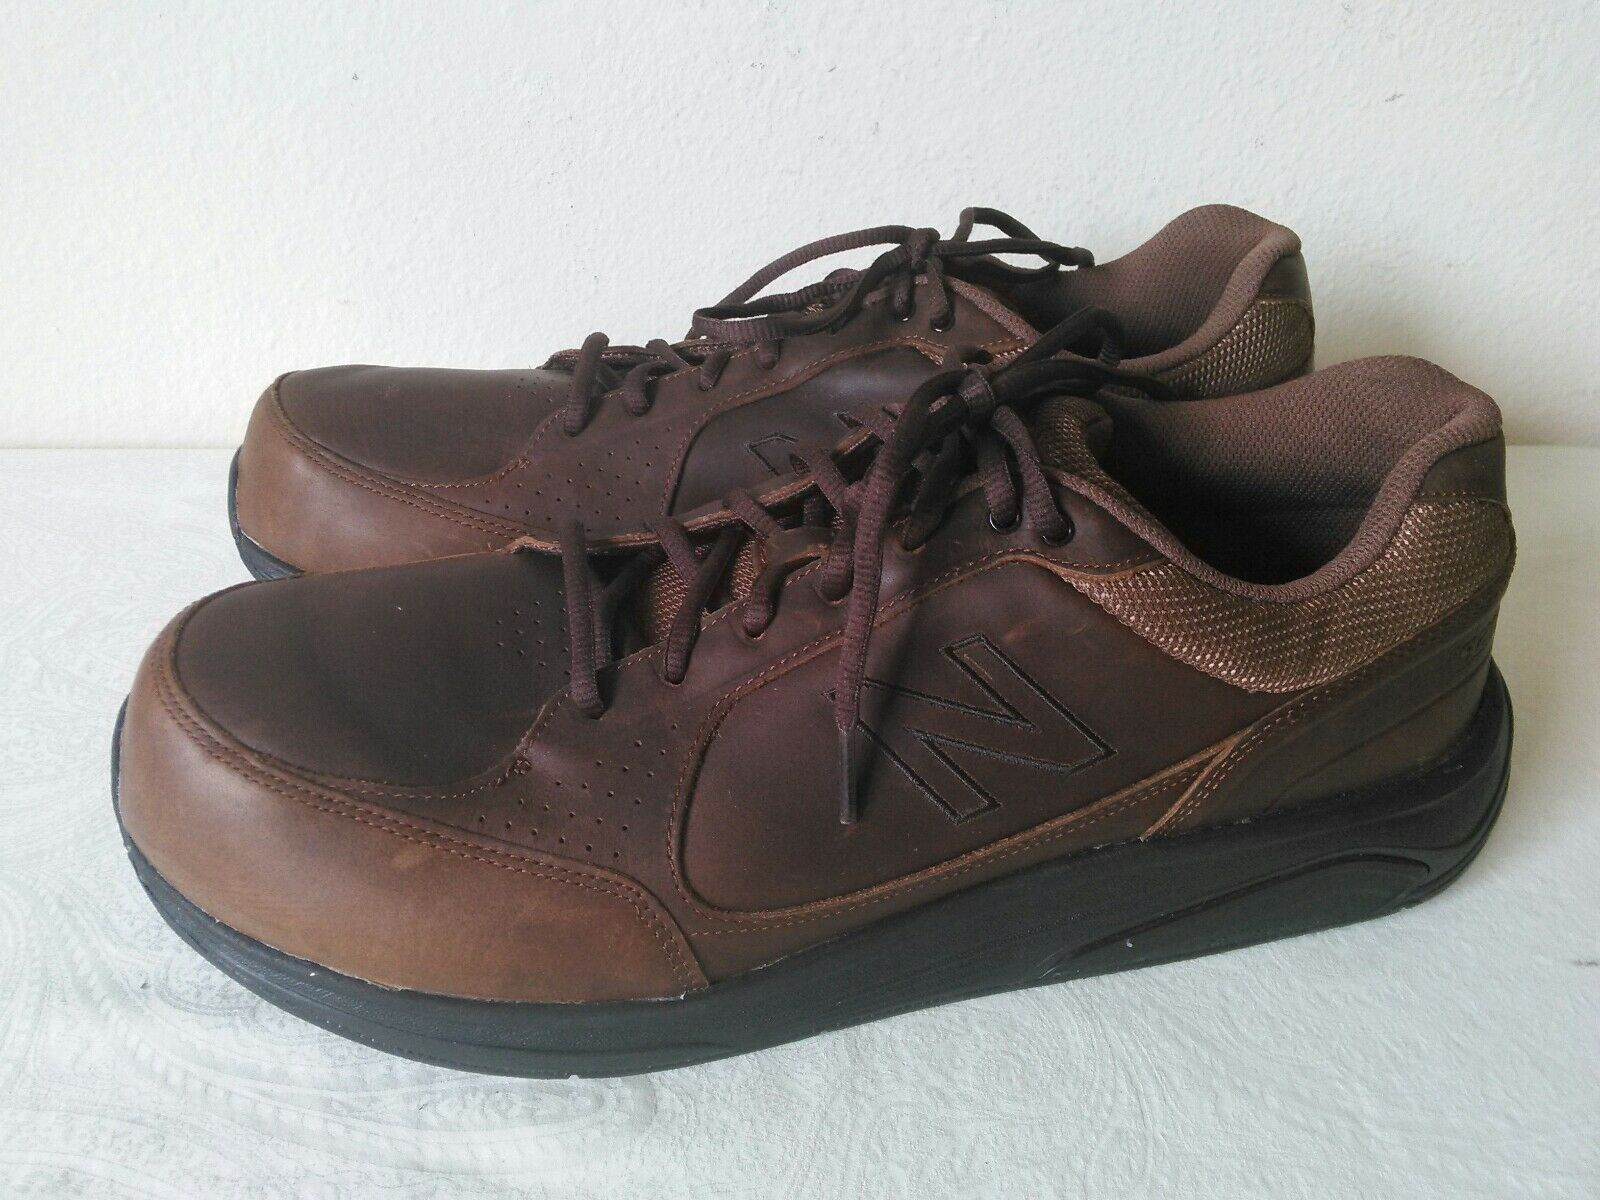 NEW BALANCE Walking Strike Path Men's Brown Leather lace up shoes Size 14 2E